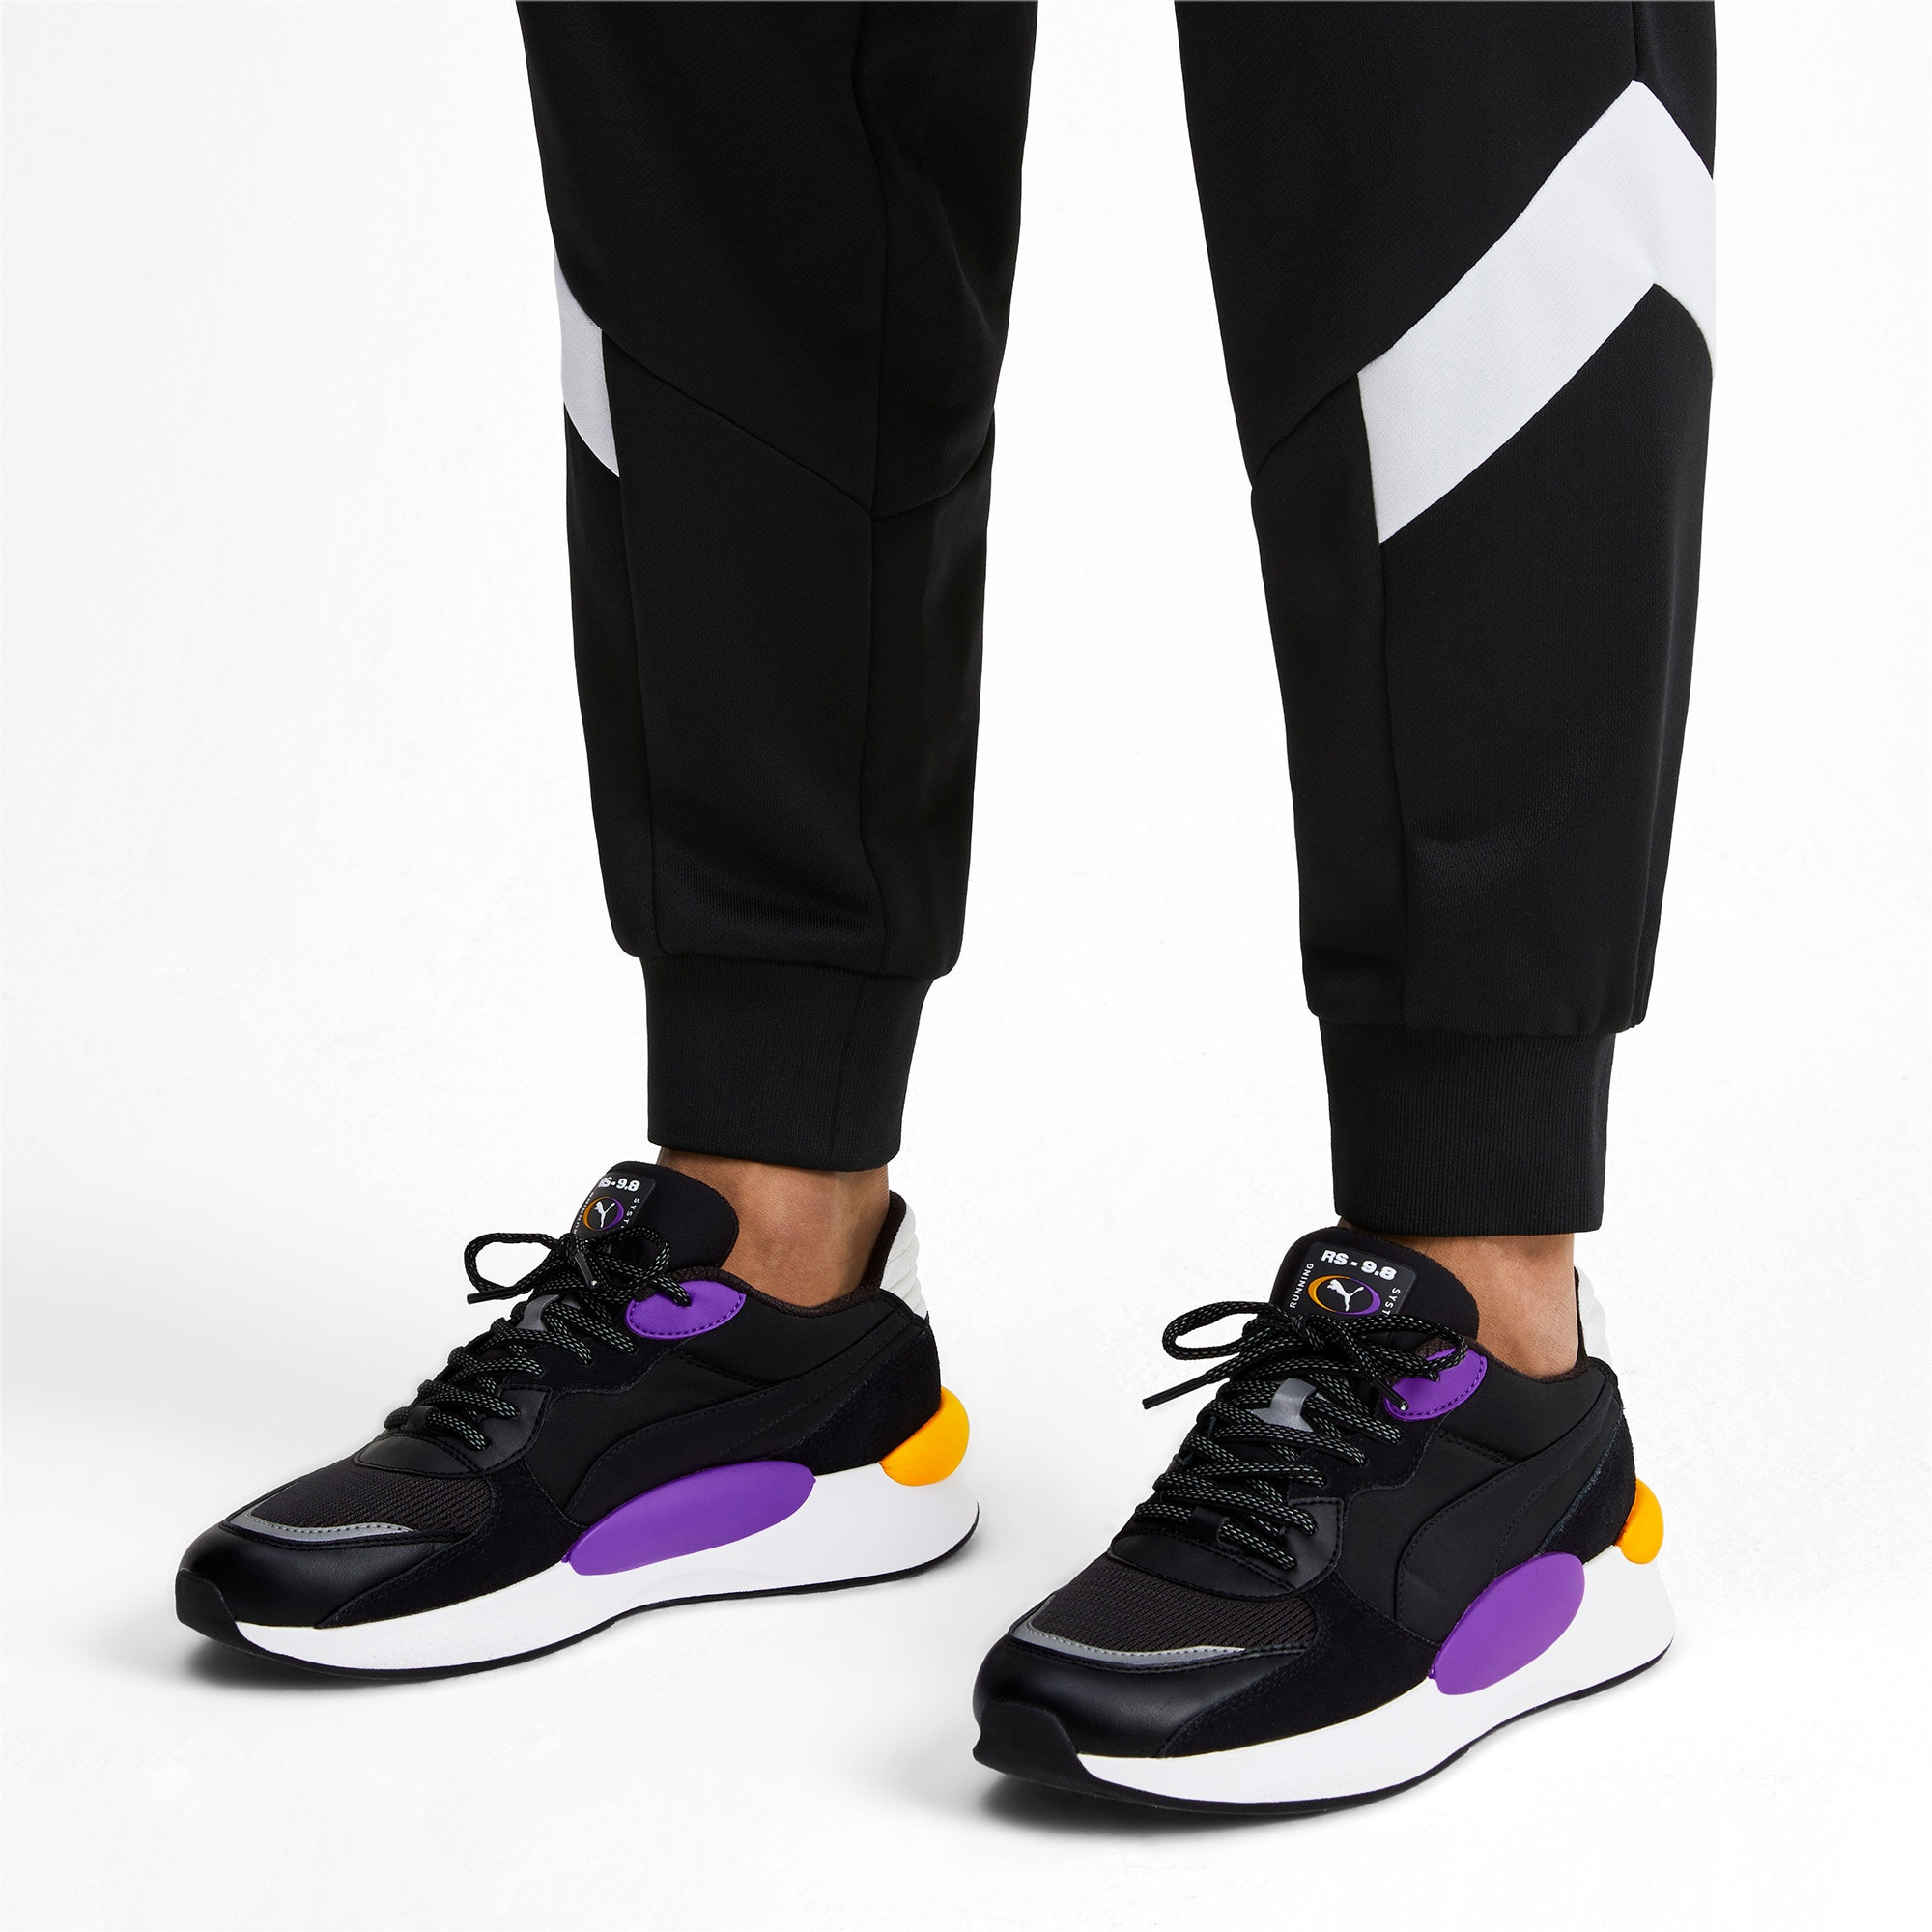 Imagen en miniatura 2 de Zapatillas RS 9.8 Gravity, Puma Black-Purple Glimmer, mediana